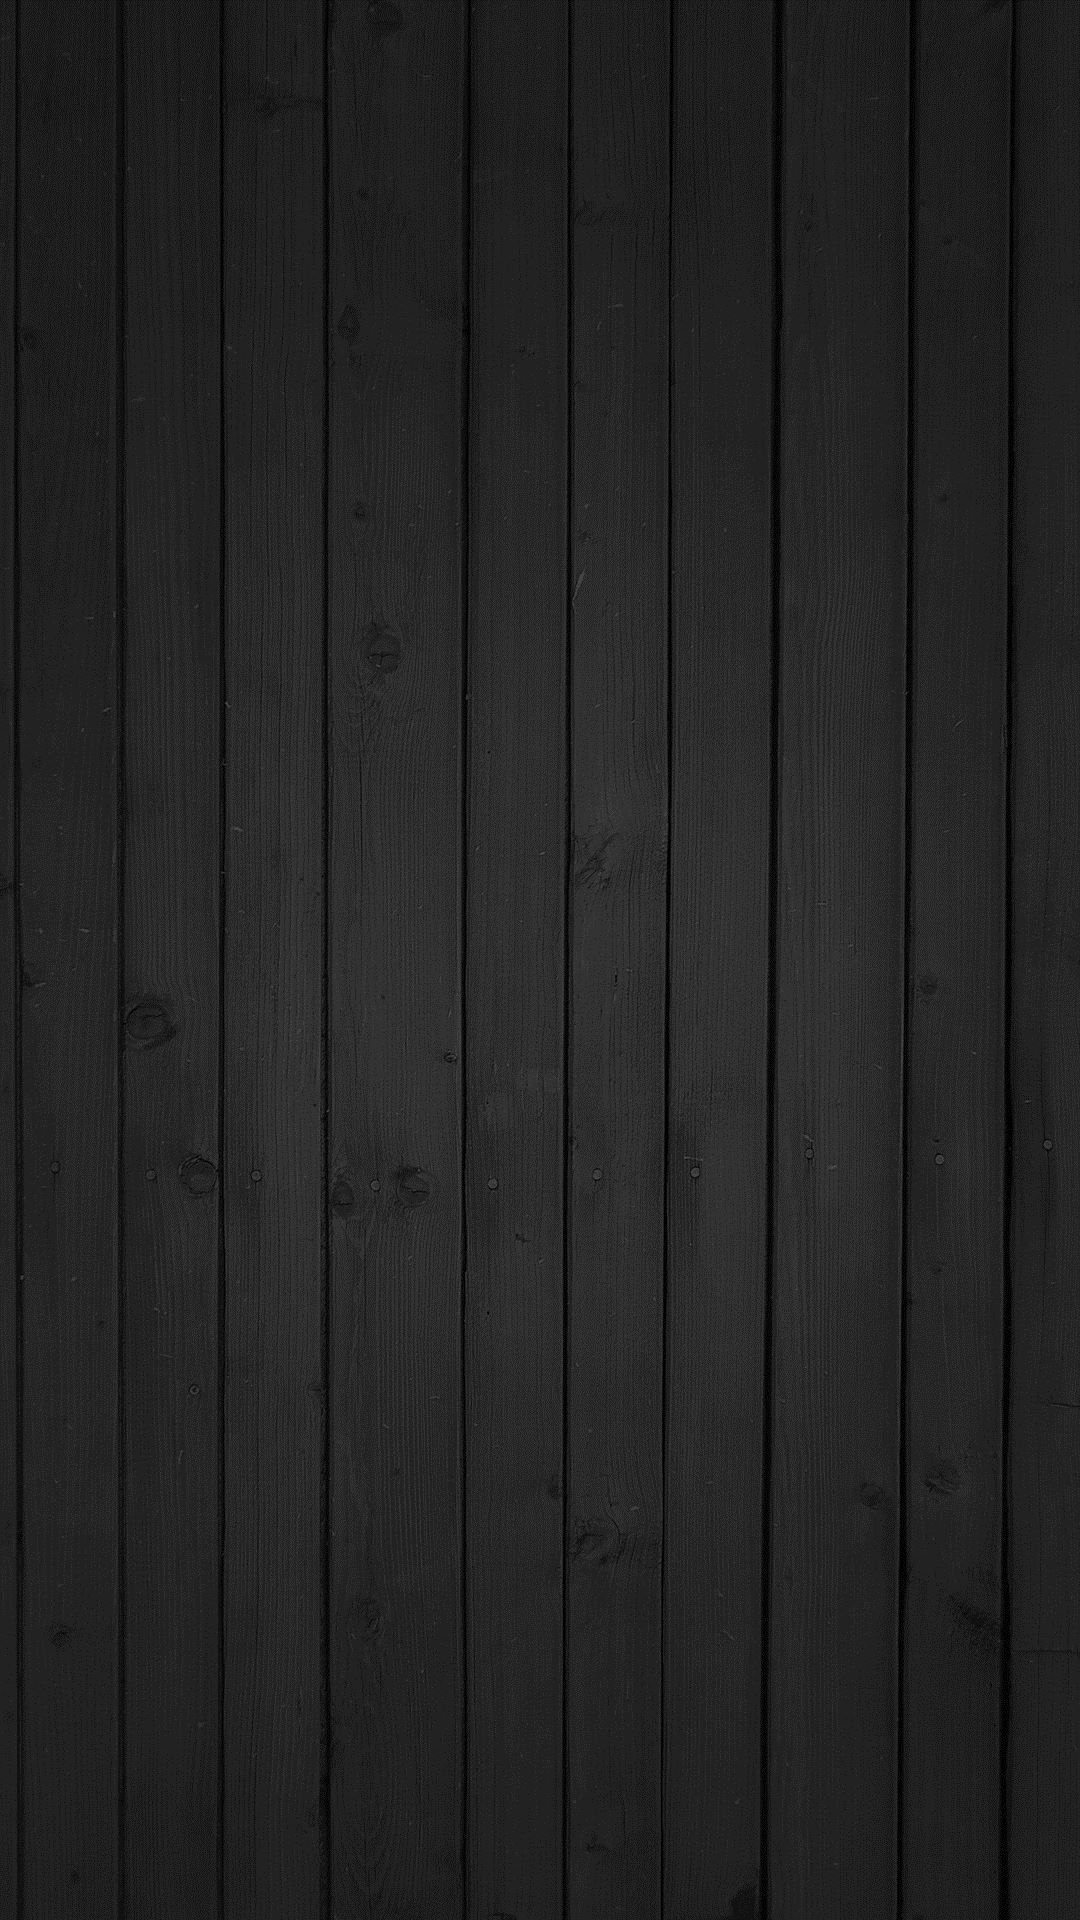 Wood dark background texture wallpaper background iphone 6 - 75 Creative Textures Iphone Wallpapers Free To Download Black Wallpaper Iphonewood